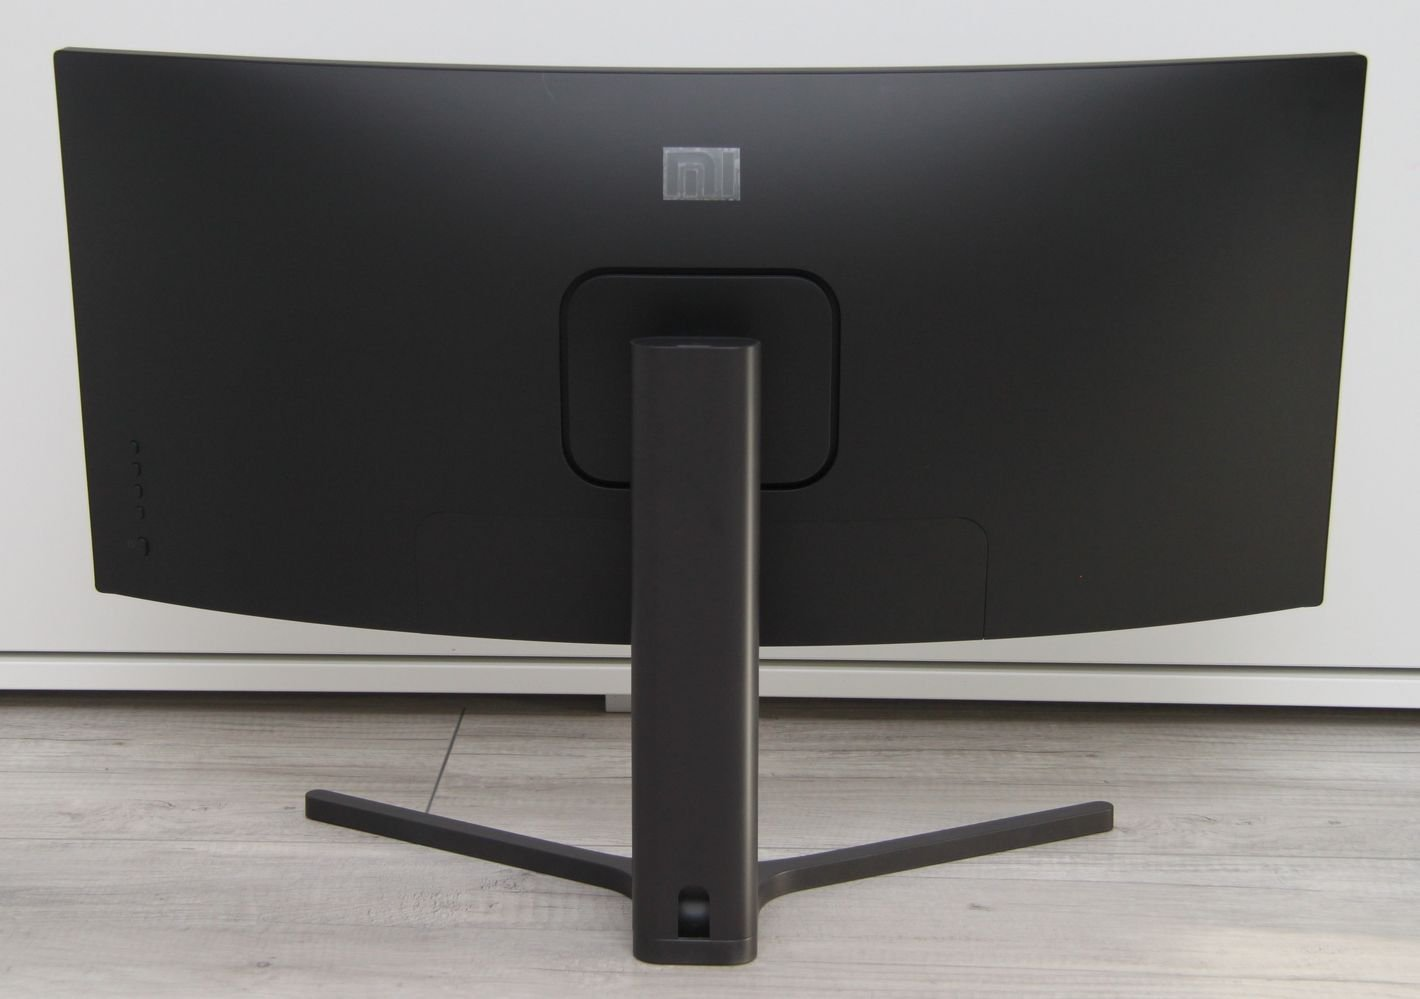 Xiaomi Mi Curved Gaming 34